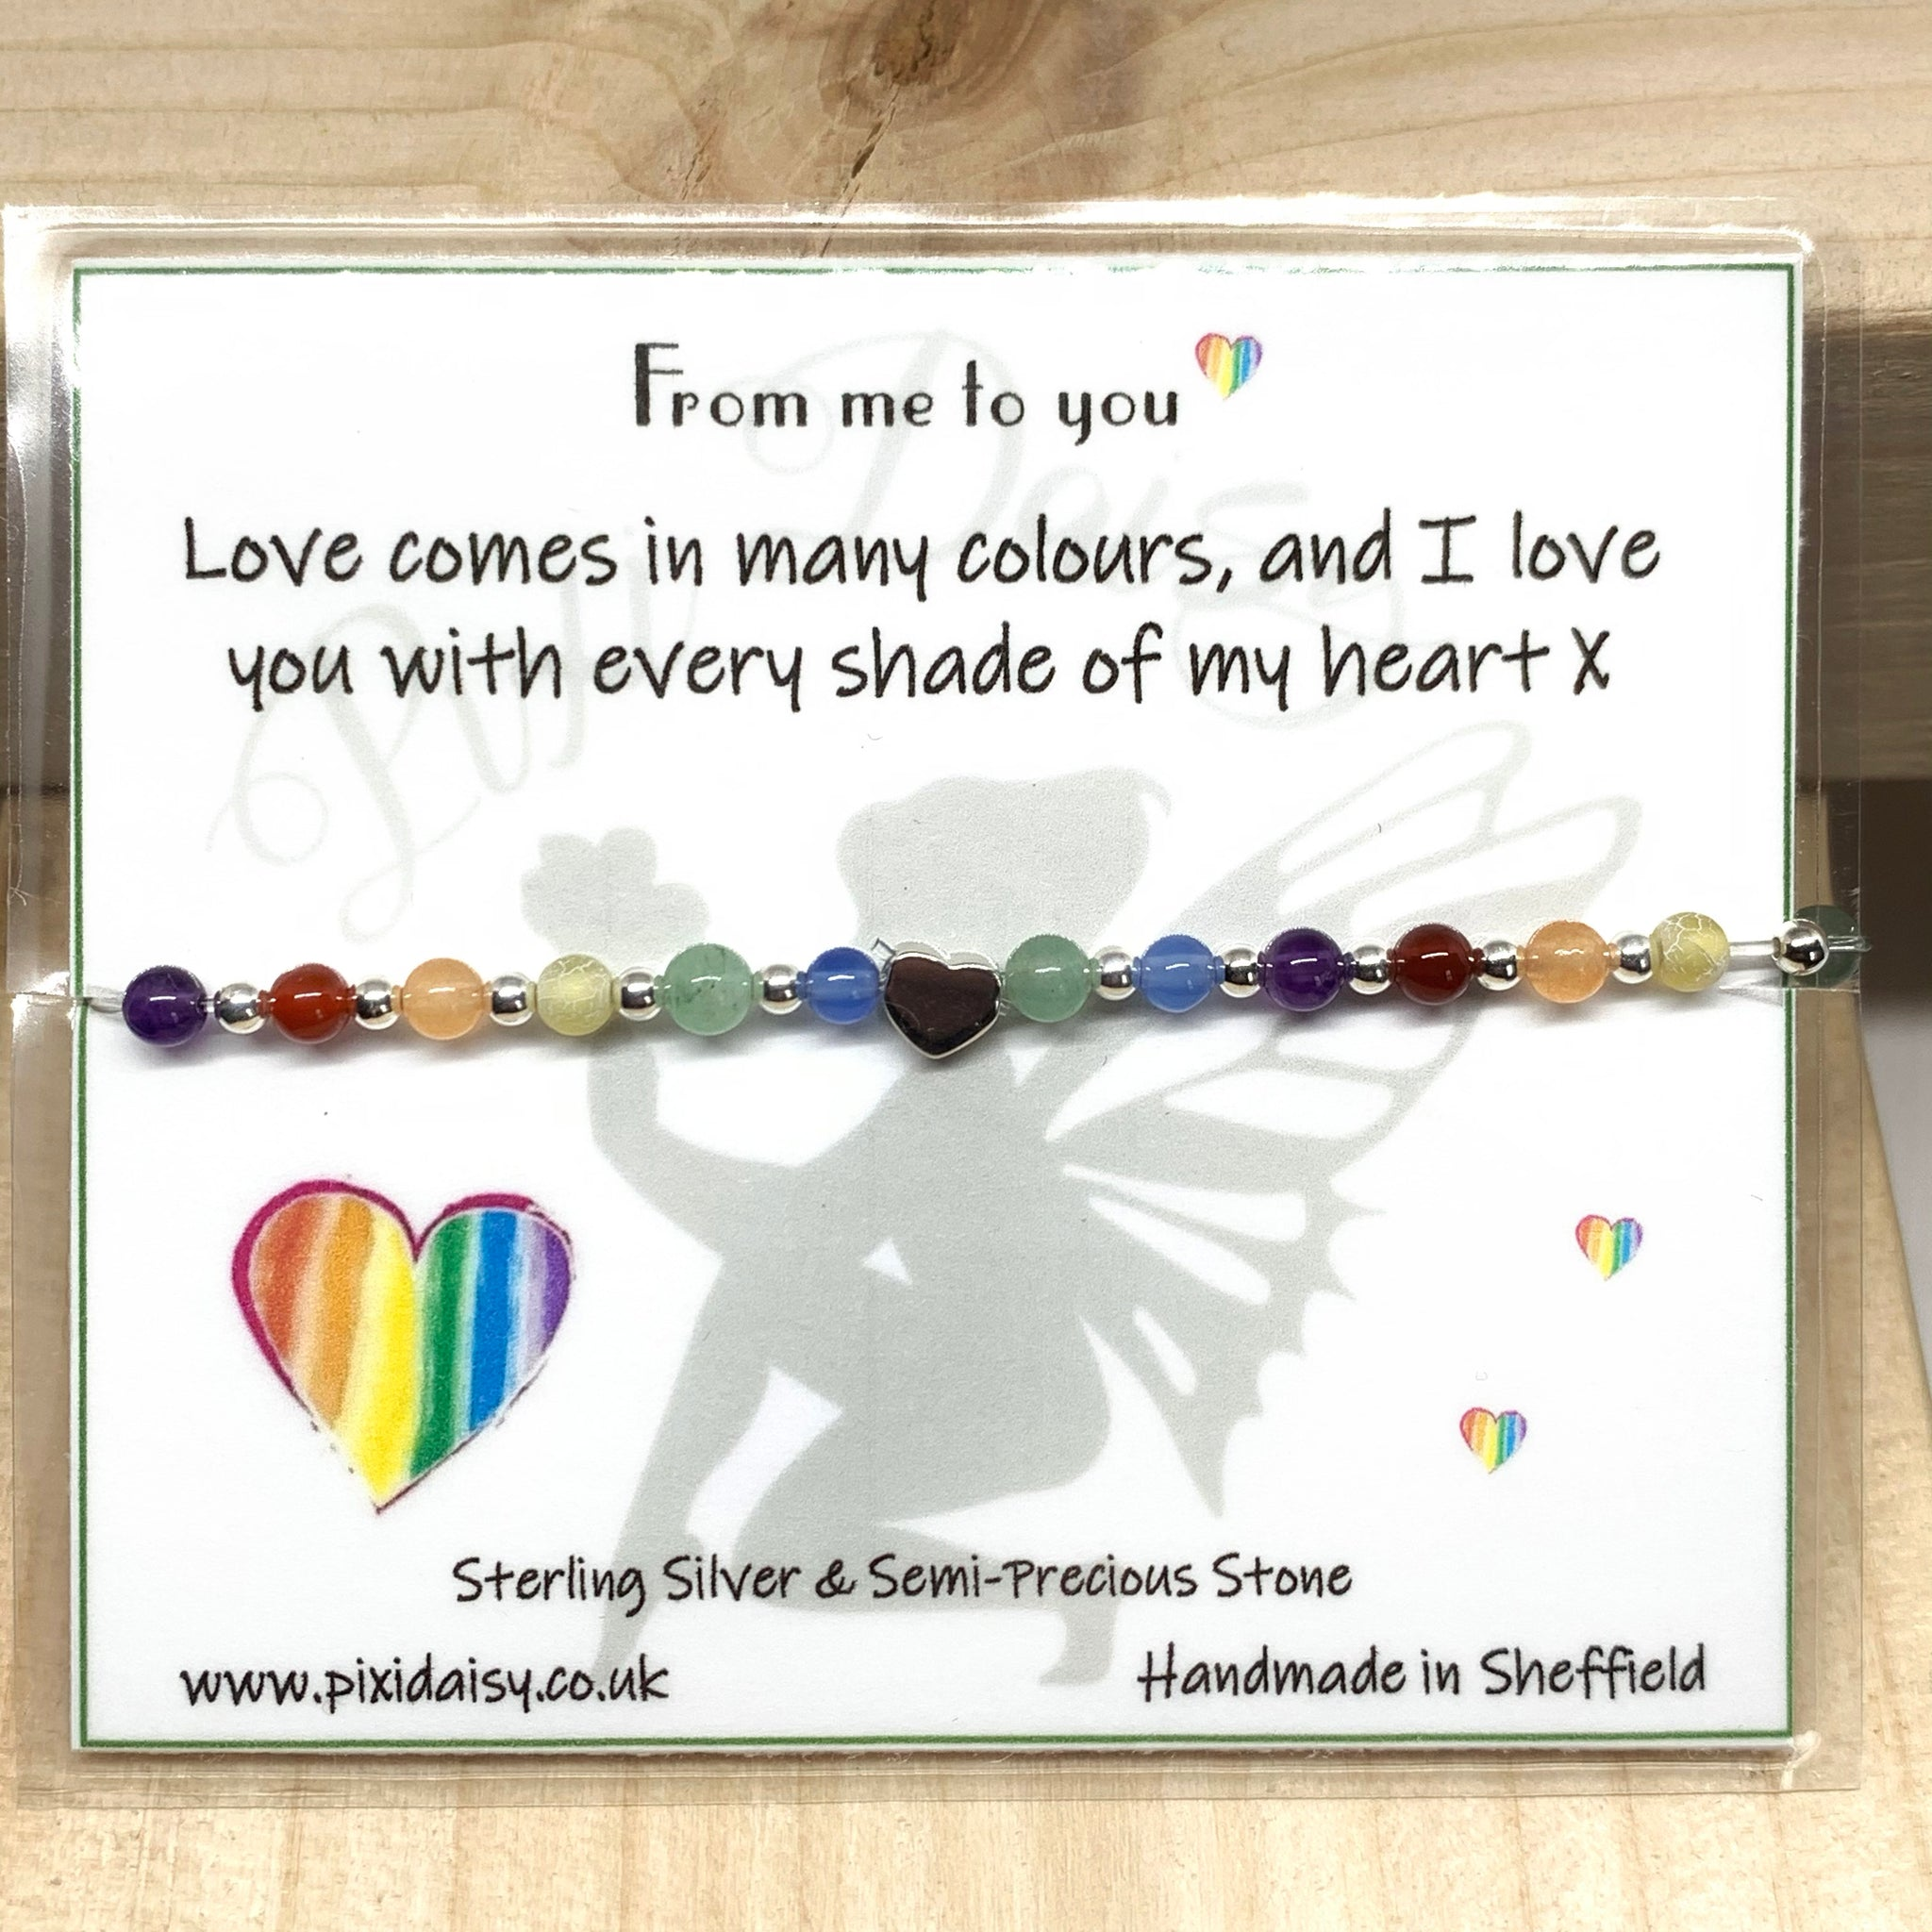 Love Comes in Many Colours Sentiment Bracelet from Pixi Daisy